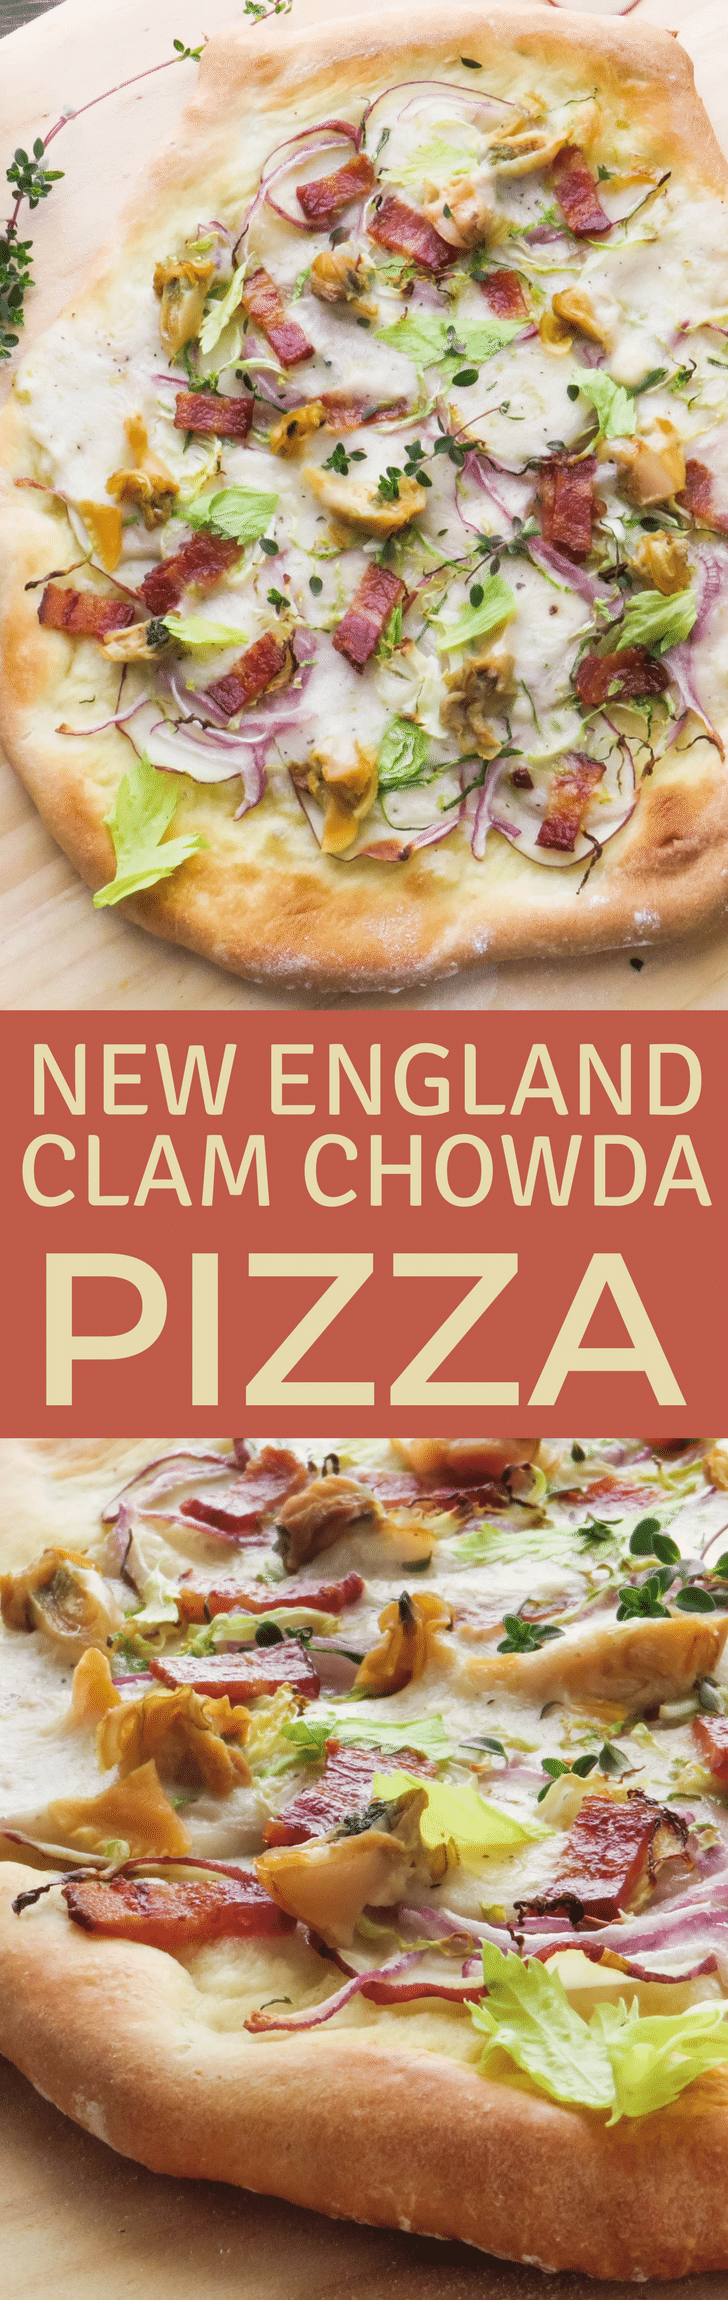 A twist on clam chowder, New England Clam Chowda Pizza has all the goodness of the classic chowder on a piping hot crust! Fresh clams, bacon and potatoes add authentic flavor. #pizzarecipe #newenglandclamchowder #clamchowderpizza #chowder #seafoodpizza #clampizza #bacon #potatoes #homemadepizza #whitepizza #potatoes #celeryleaves #redonions #seafood #shellfish #littleneckclams #middleneckclams #seafoodbechamel #seafoodsauce